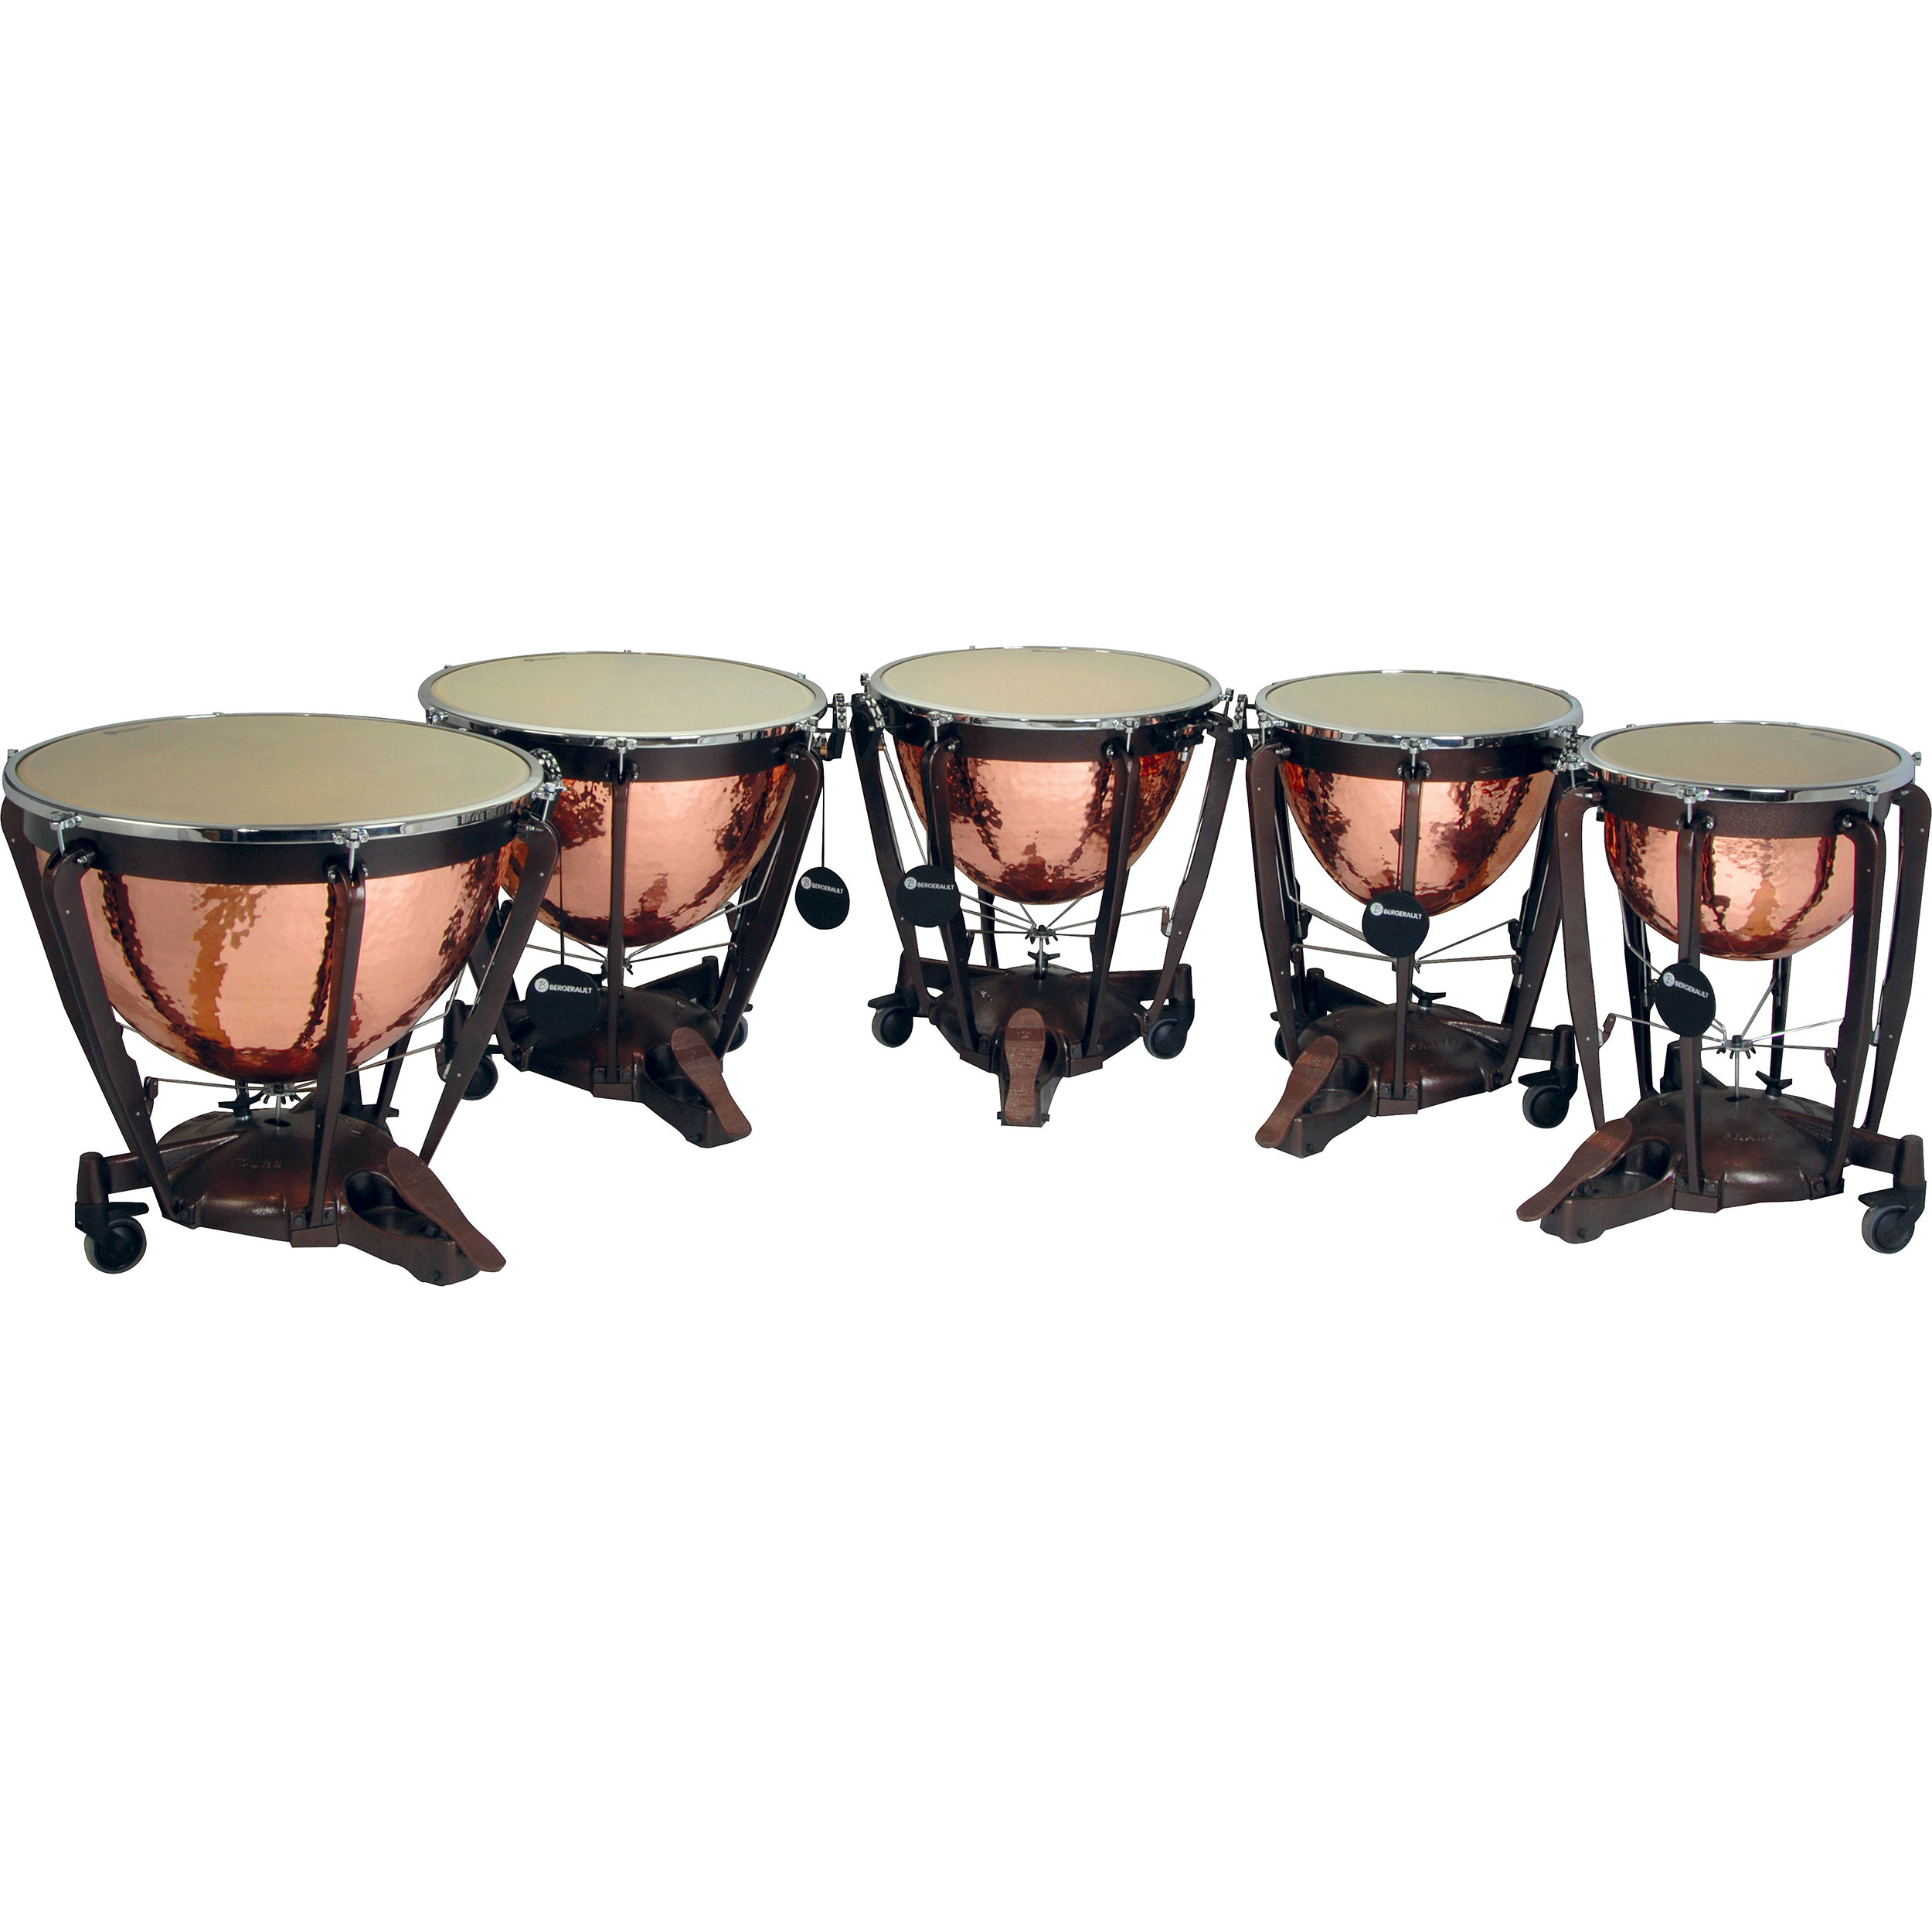 "Bergerault 5-Piece Grand Professional Series Parabolic Polished Copper Timpani Set (20/23/26/29/32"")"